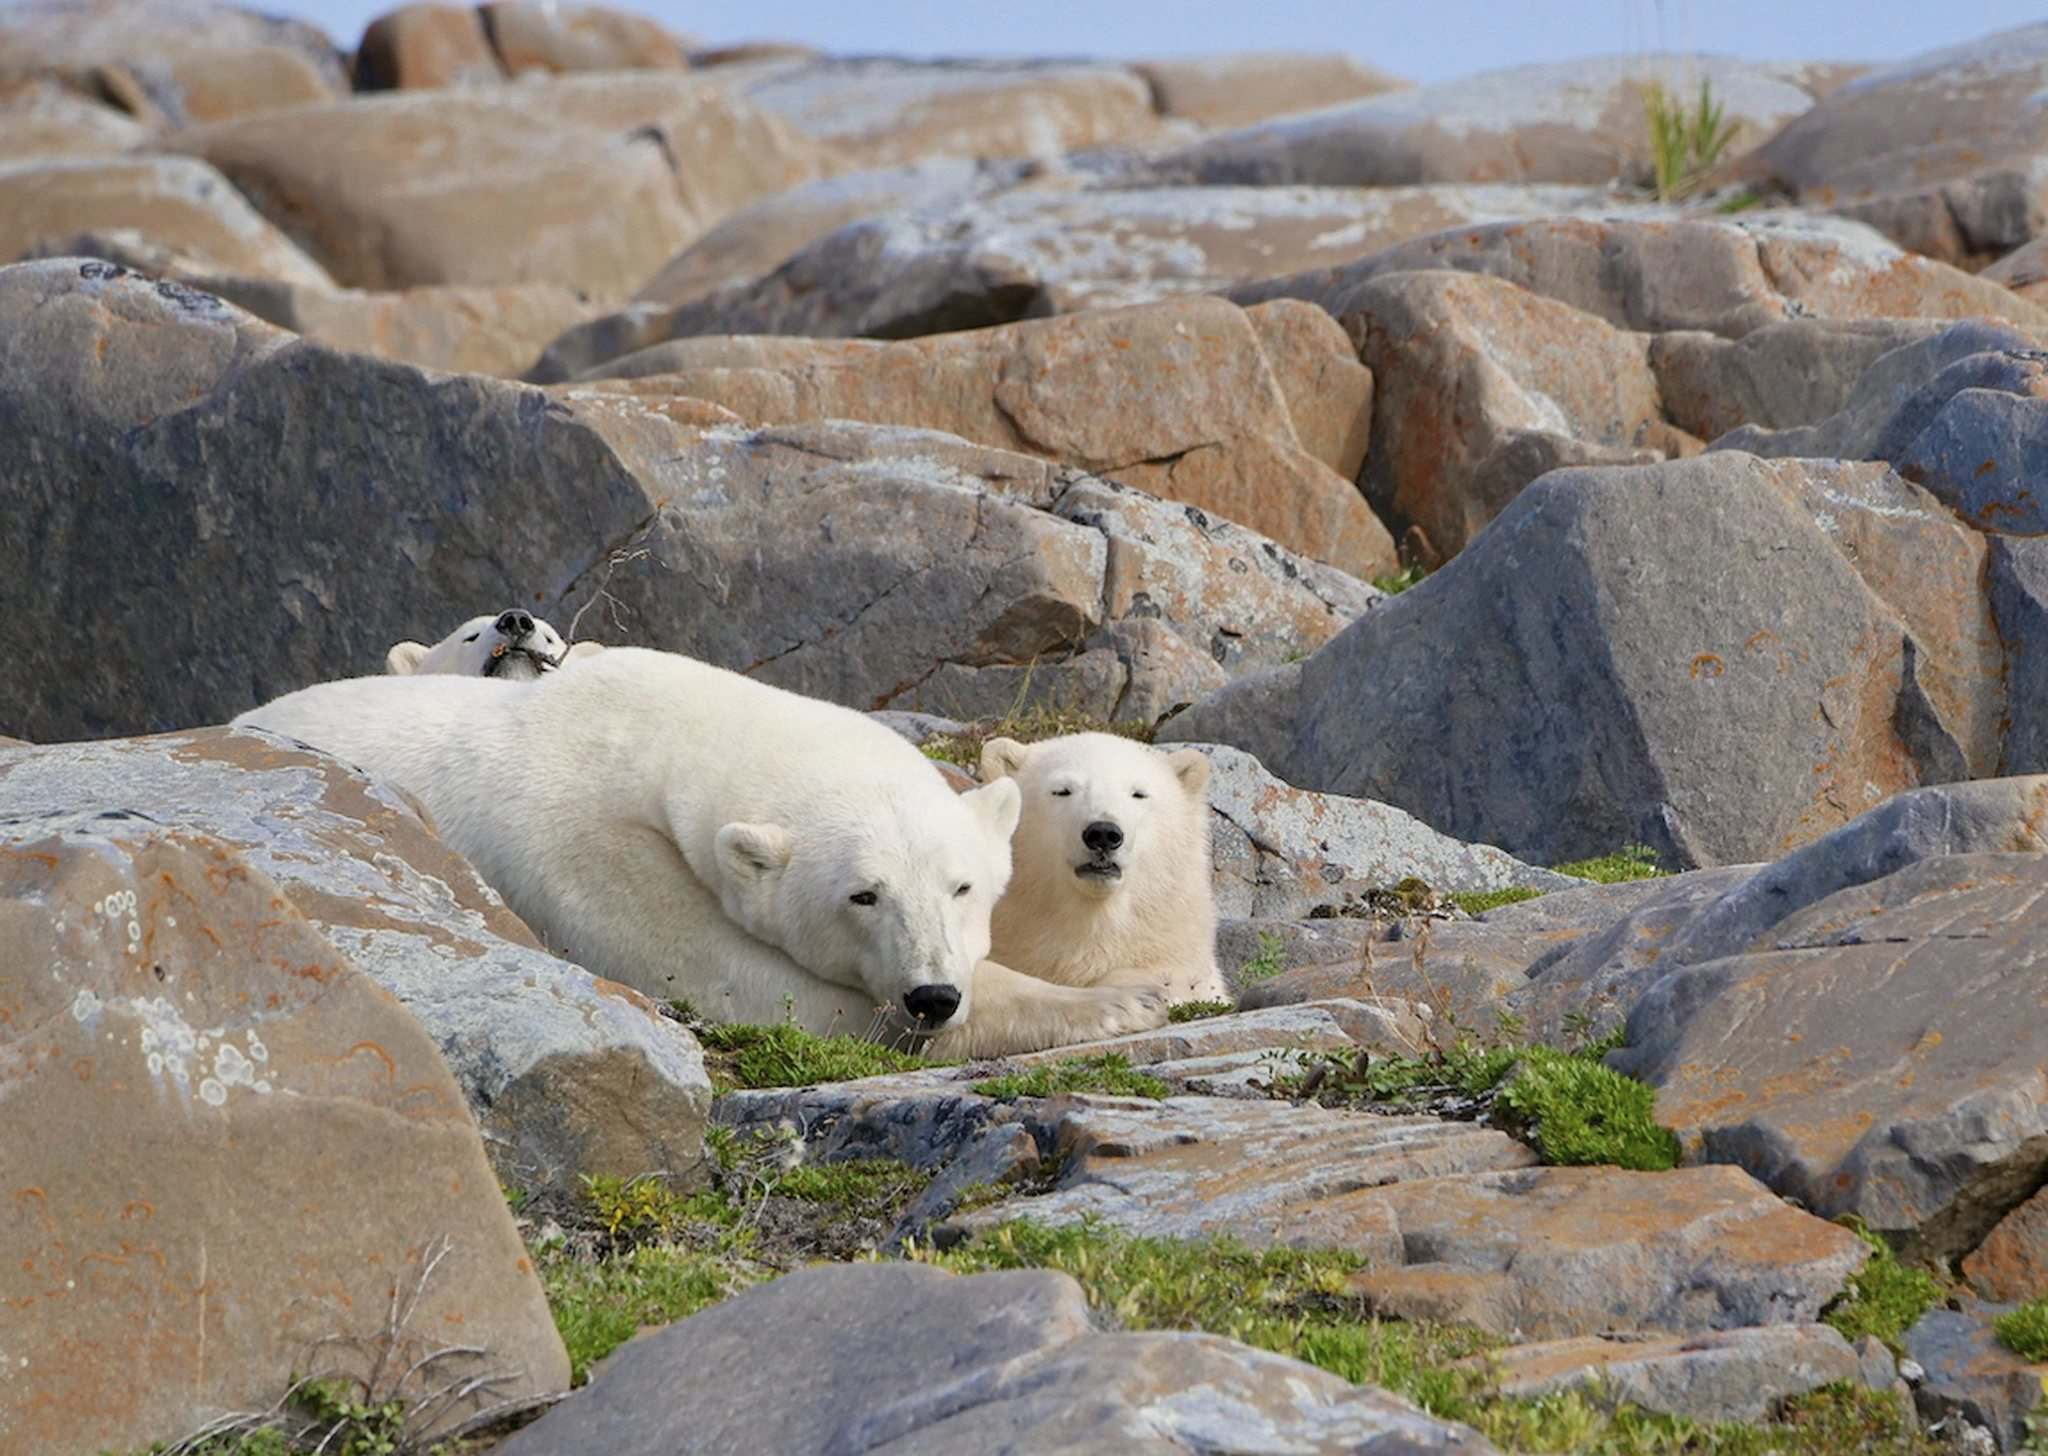 """""""We know that (sea ice) breakup was later this year than last, so we would have expected bears to be in better condition this year, which hopefully translates into (more and bigger) cubs in the spring. Unfortunately, we won't know how much better condition they may have been in,"""" Lunn said."""